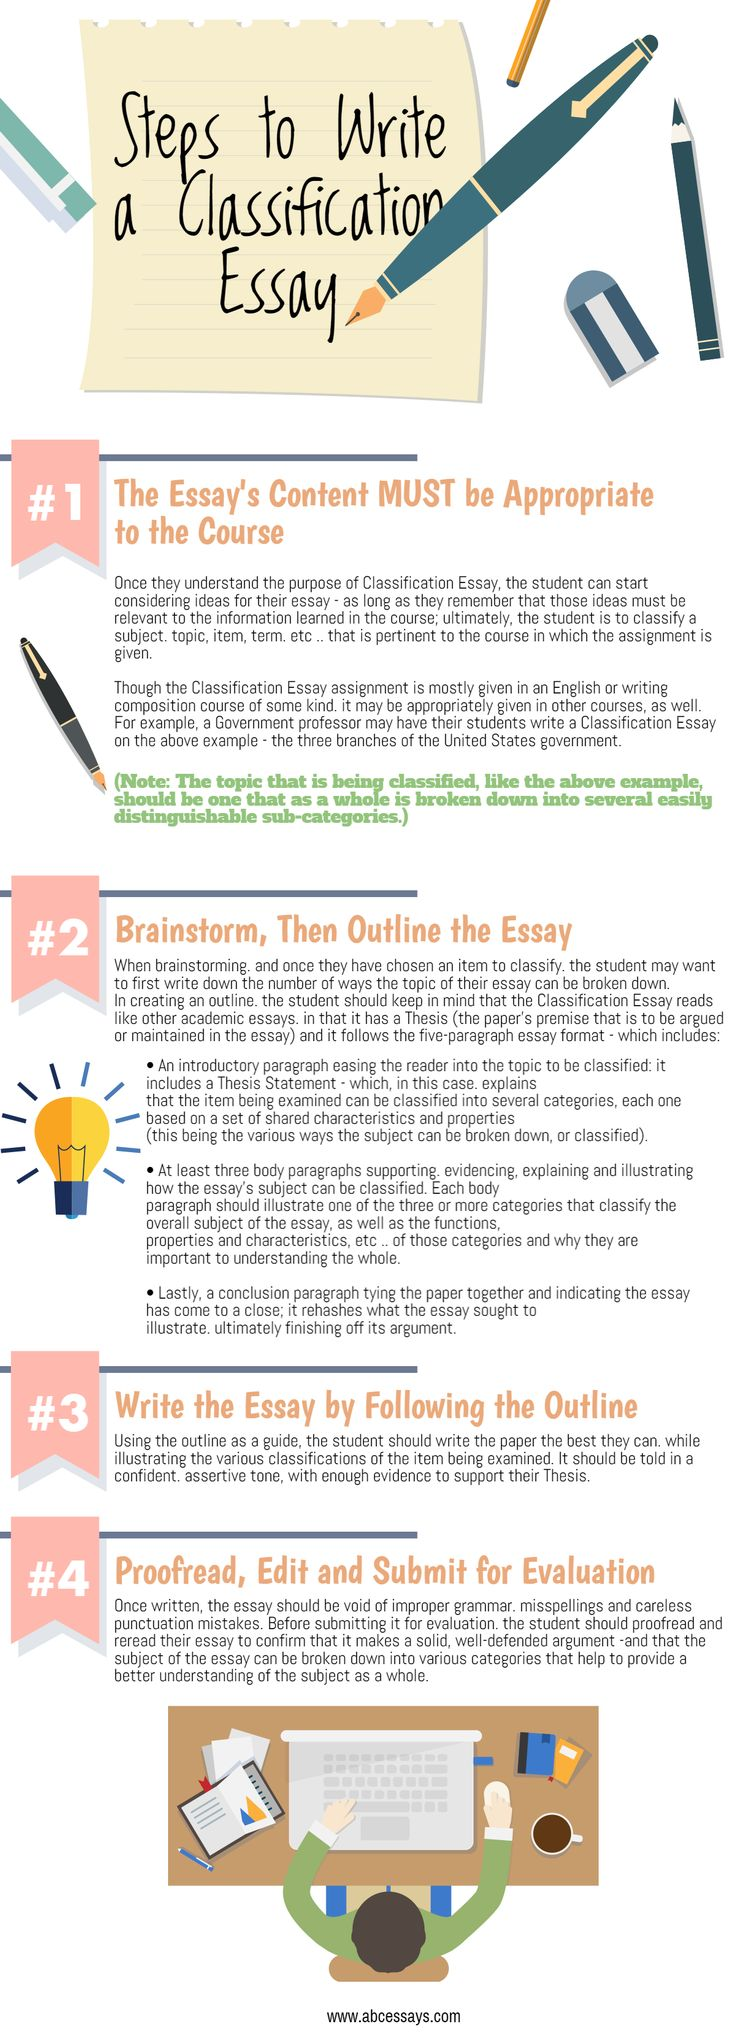 techniques of essay writing Here are persuasive essay tips for each phase of the writing process 1 prewriting for the persuasive essay the prewriting phase of writing a persuasive essay is extremely.